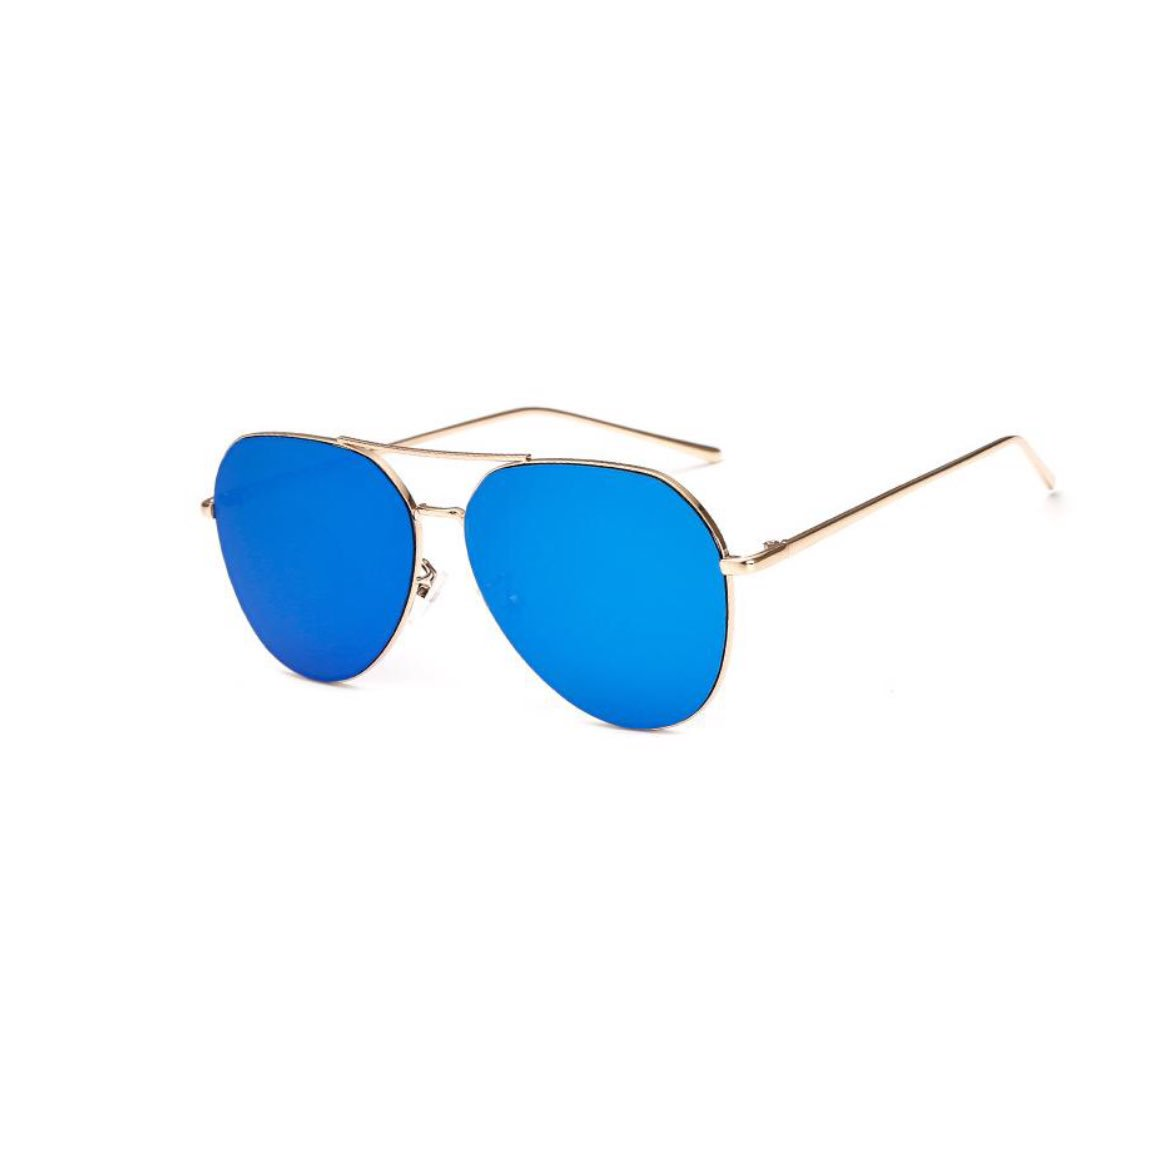 Retro Flat Shades   Shop: https://t.co/SMgndWs1kU https://t.co/uo0Lo7fw7u